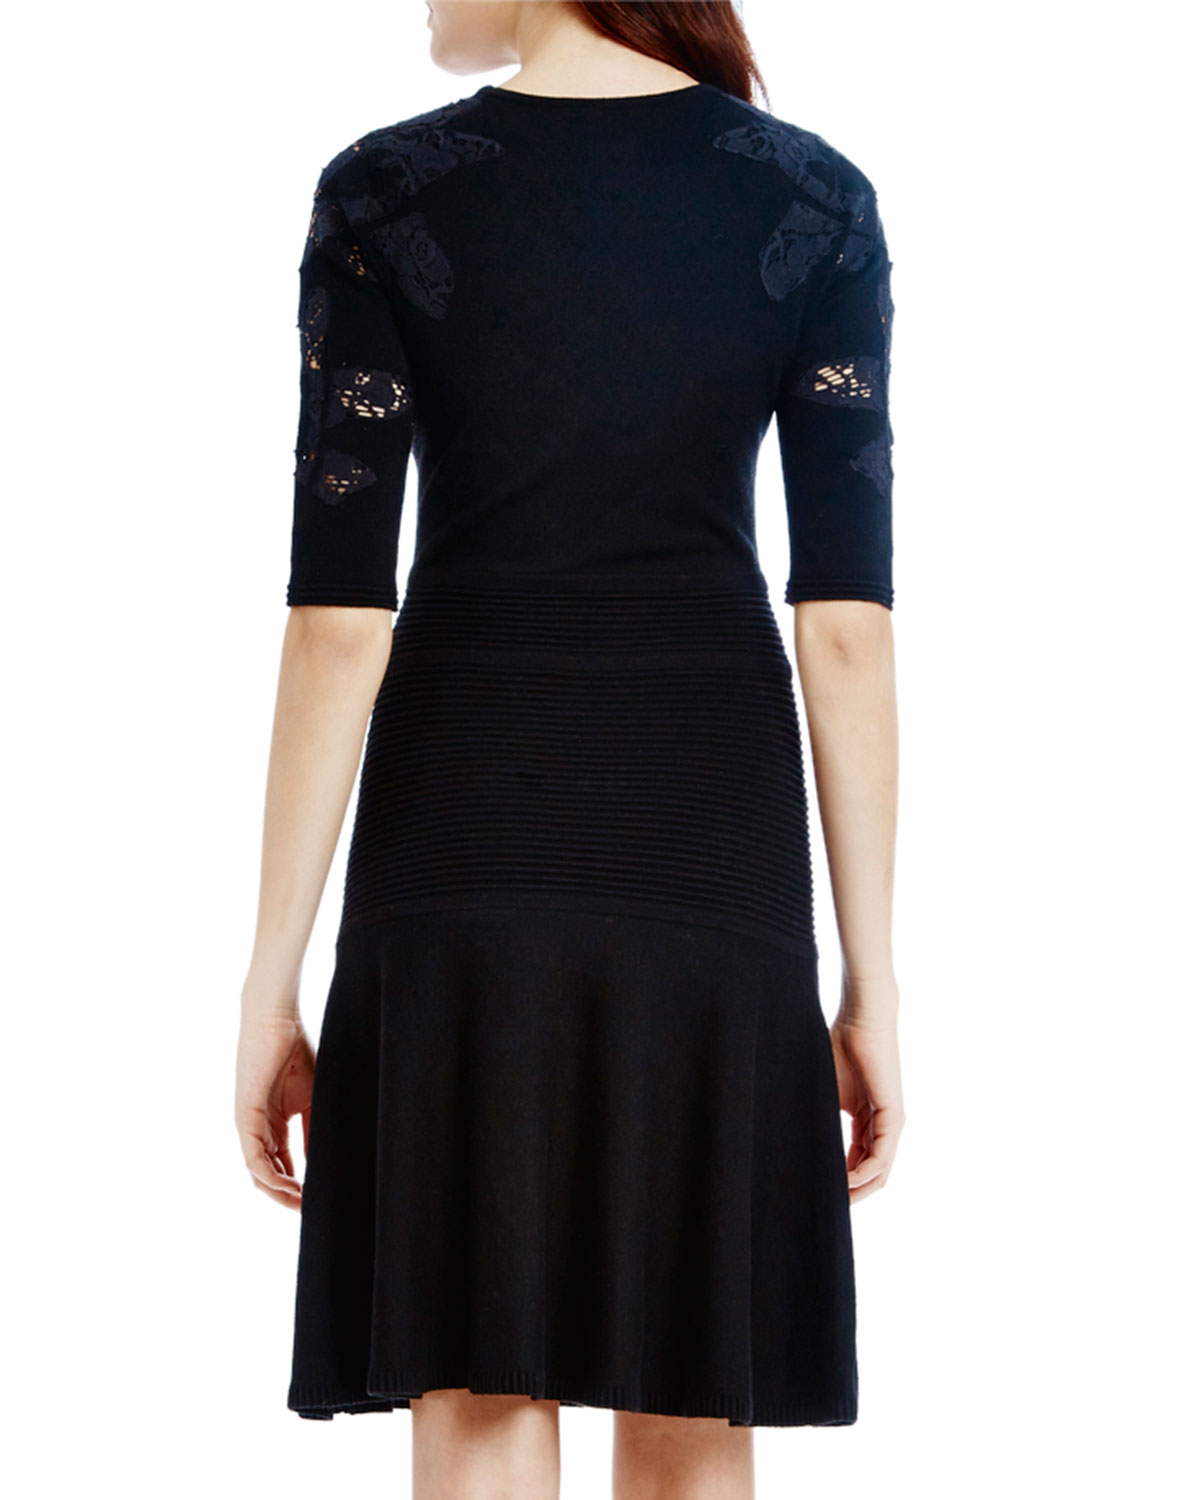 Raoul Woman Lace-paneled Merino Wool Dress Black Size L Raoul Low Price Fee Shipping Online Largest Supplier Cheap Price Affordable For Sale Buy Cheap Sale Official Site Online WhlokOmKW